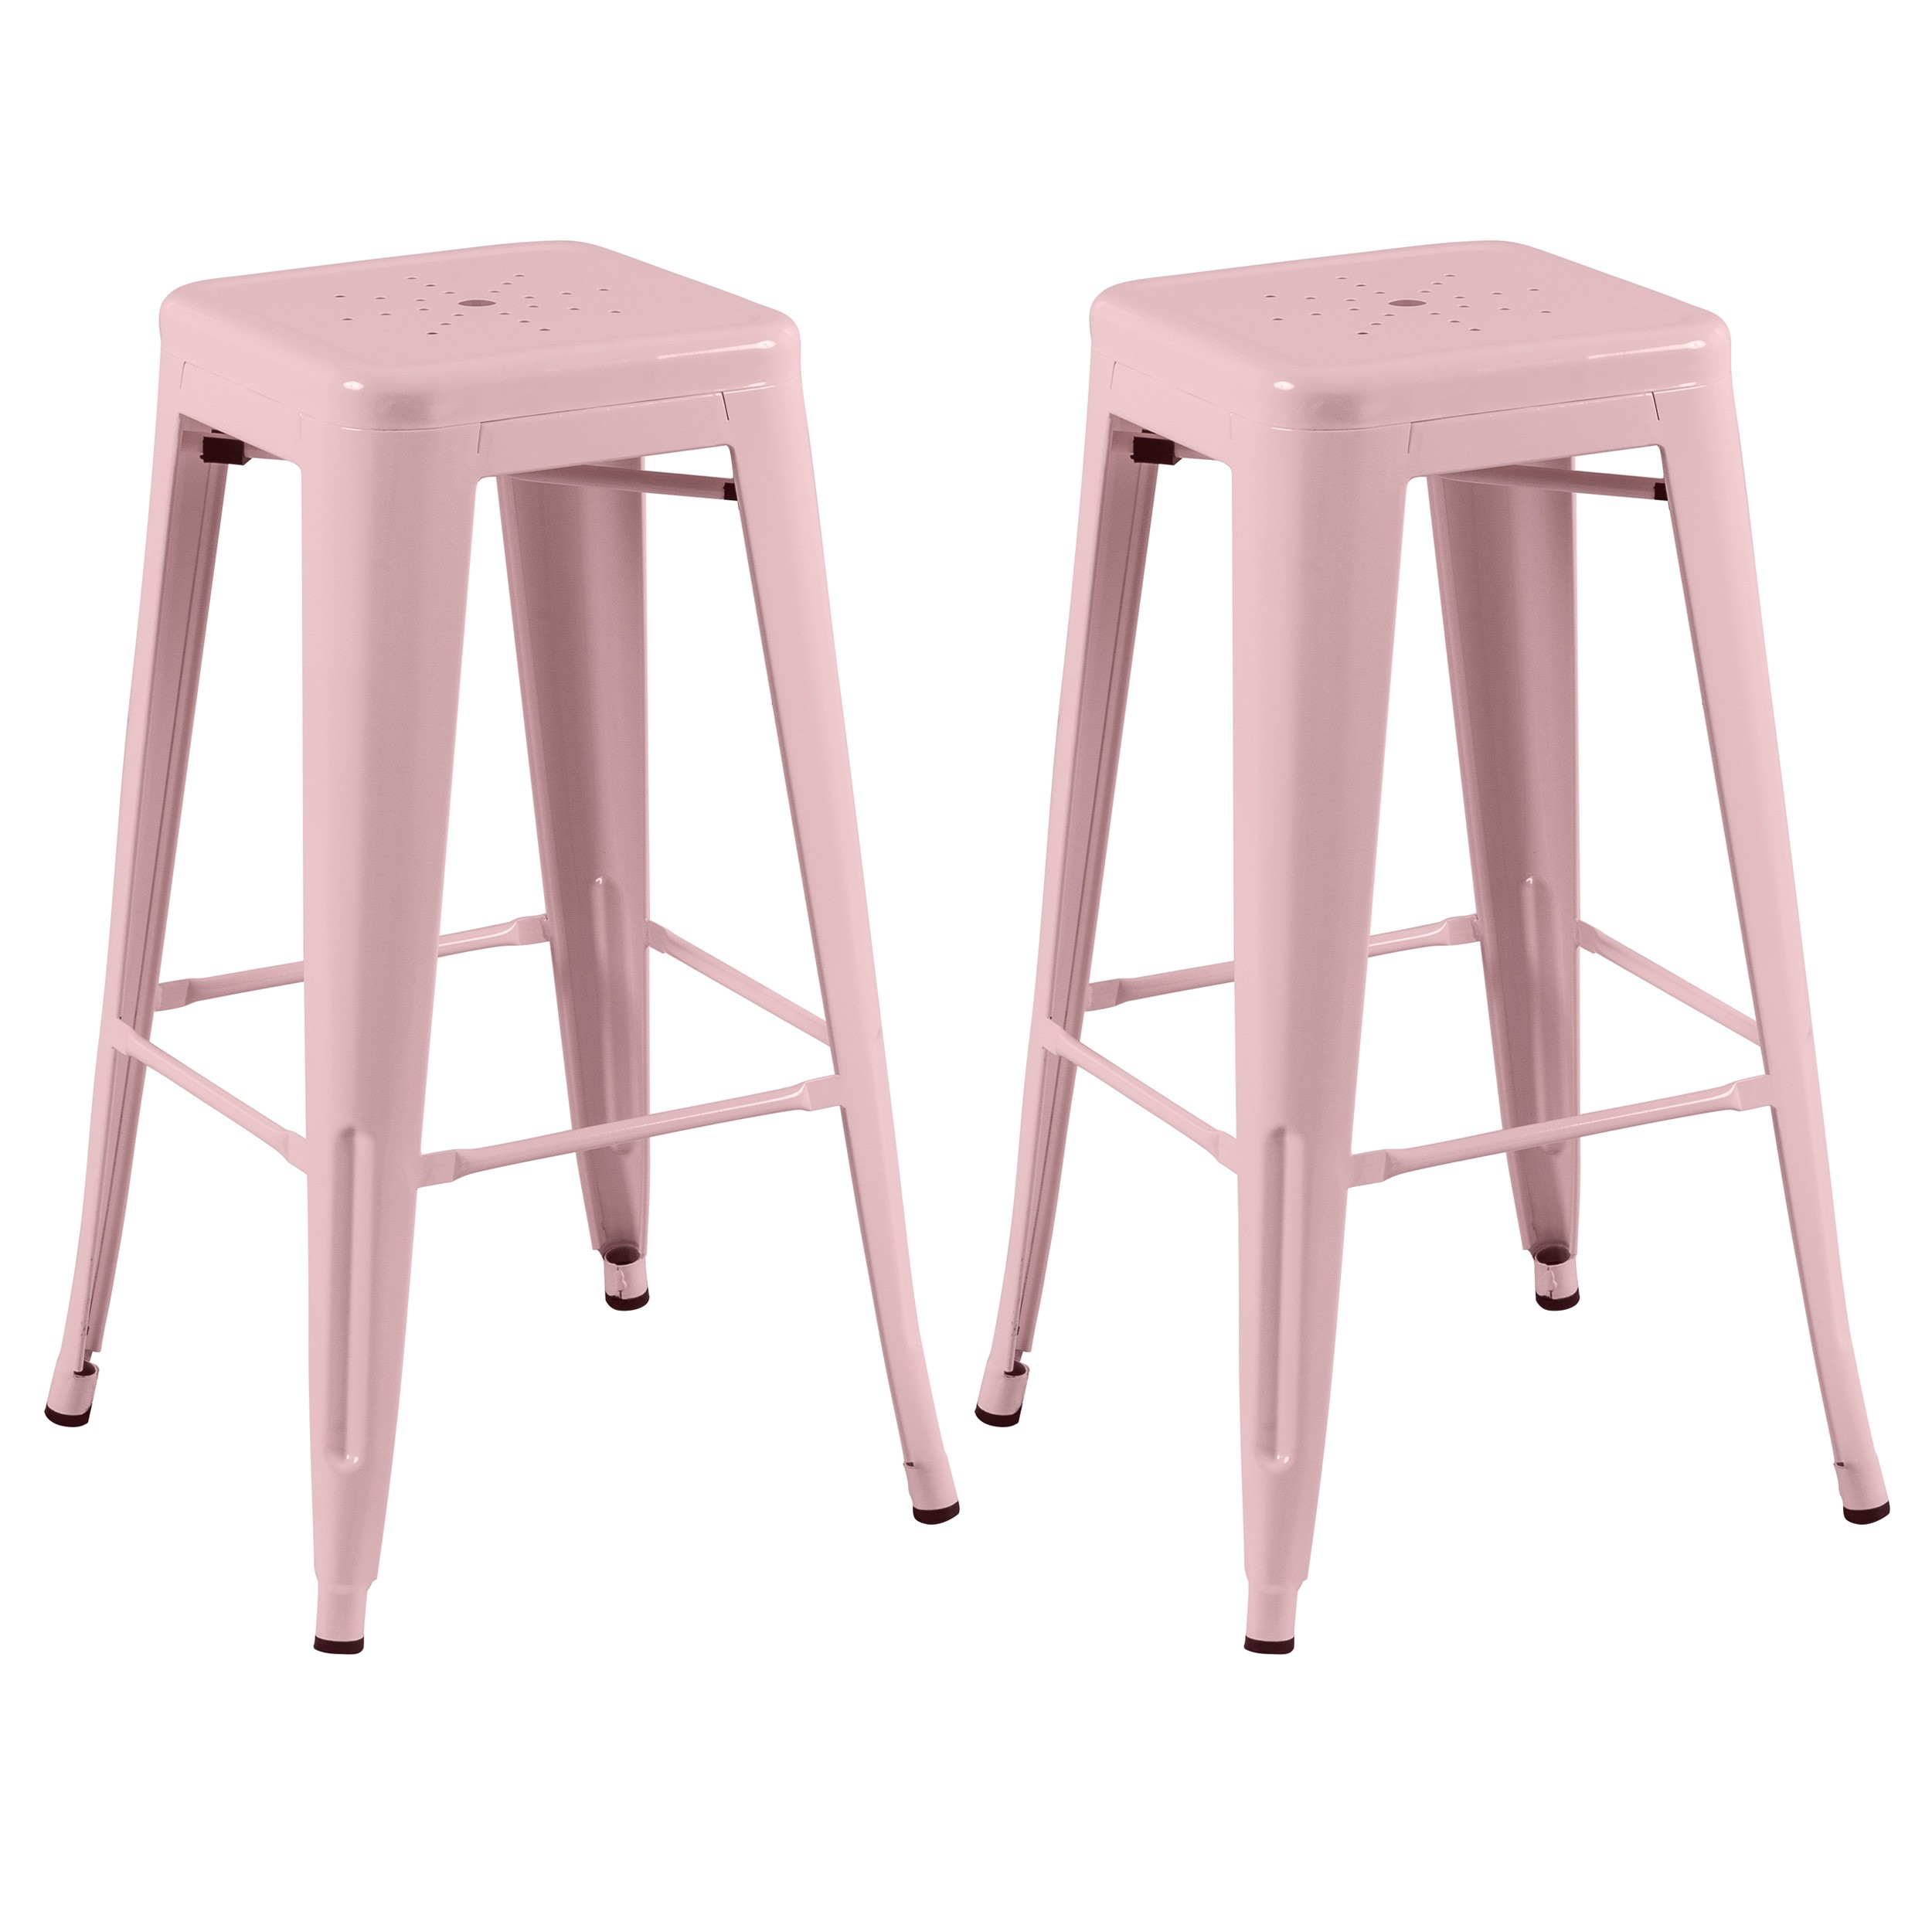 tabouret de bar indus rose lot de 2 craquez pour nos tabourets de bar indus roses rdv d co. Black Bedroom Furniture Sets. Home Design Ideas